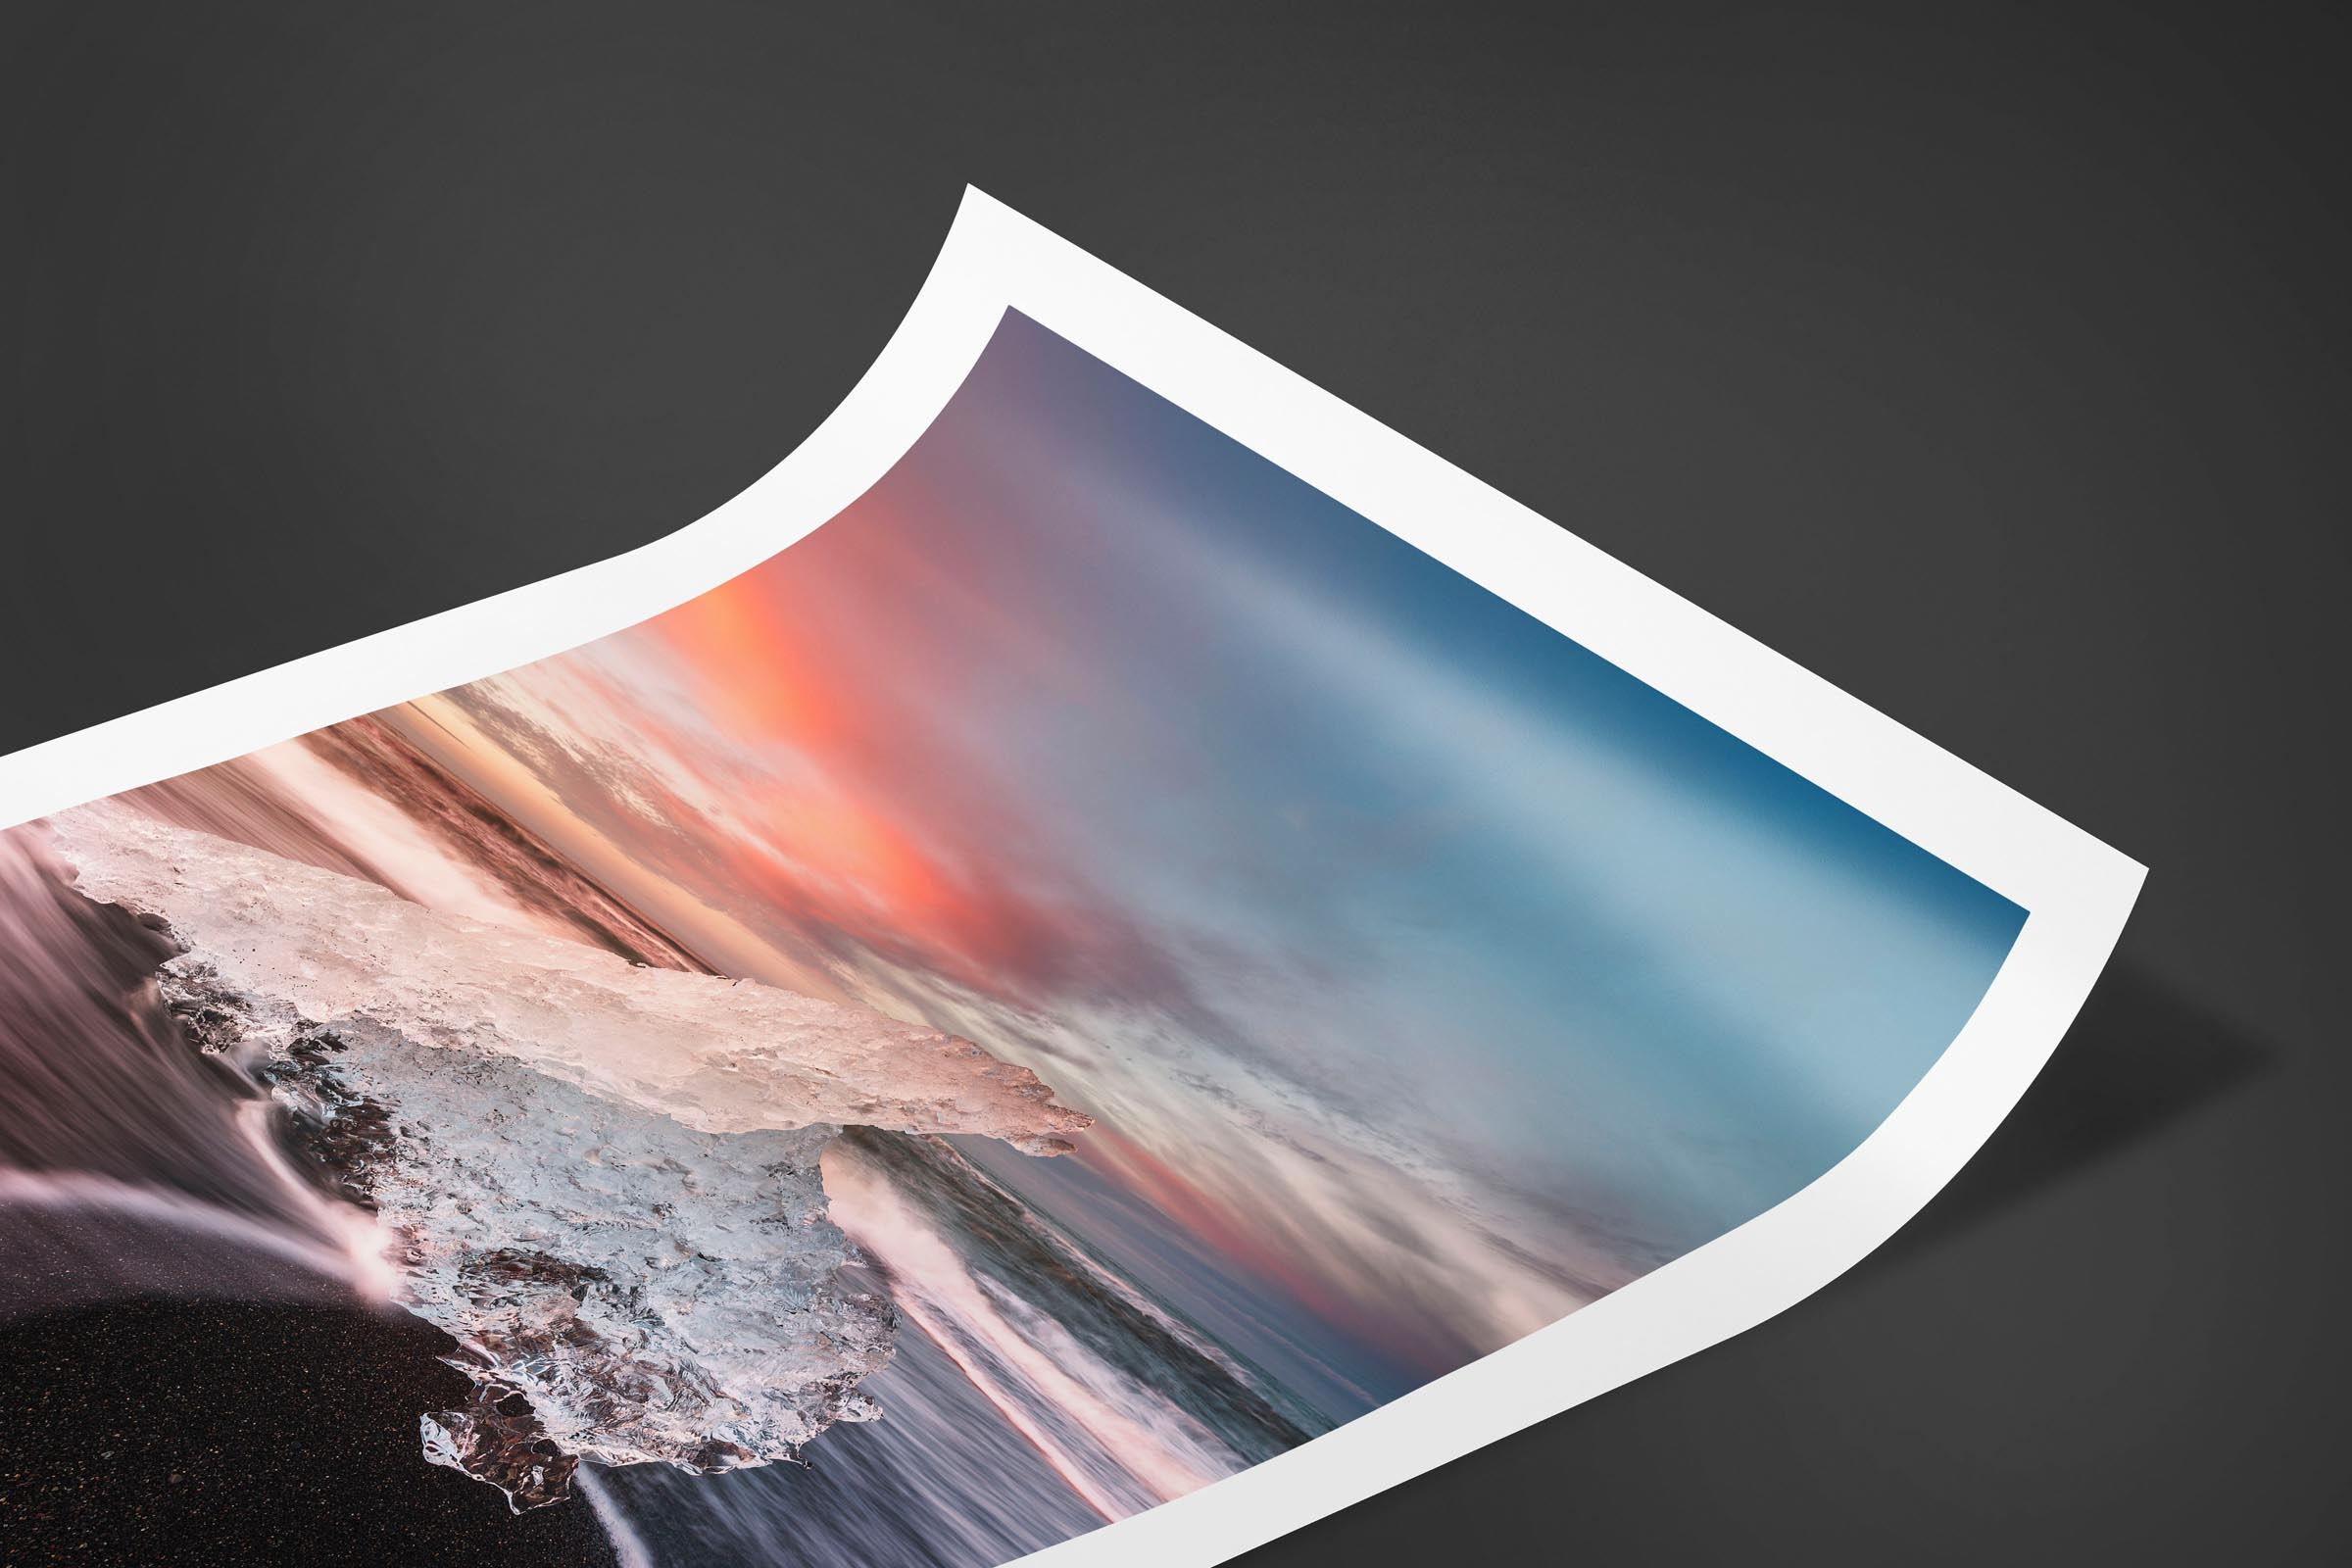 Fine art limited edition print of Ice Beach in Jokulsarlon, Iceland by Brent Goldman Photography